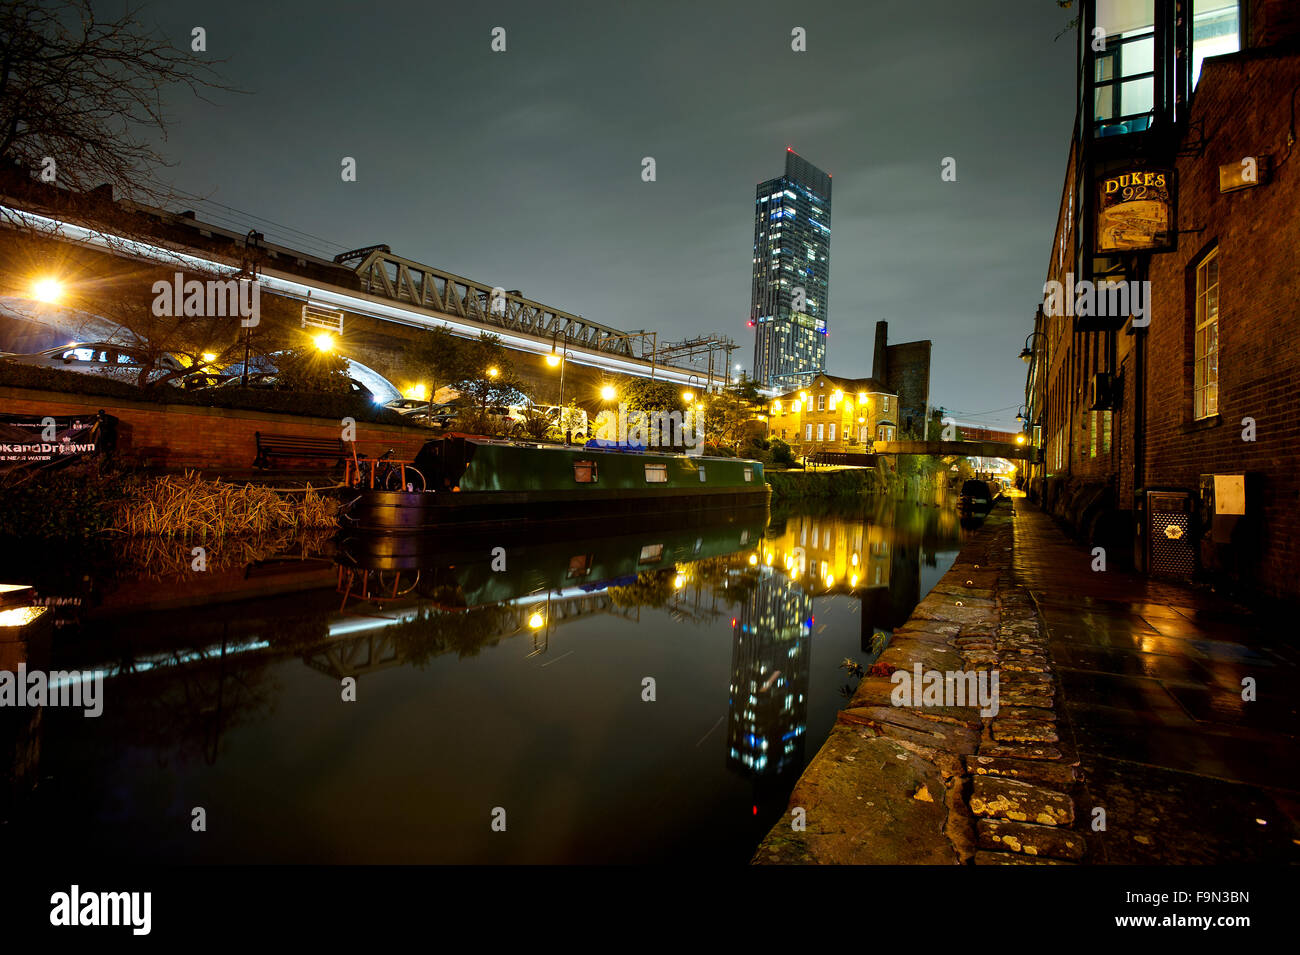 Night time image of the Castlefield basin of the Rochdale Canal, Manchester city centre. Picture by Paul Heyes, - Stock Image